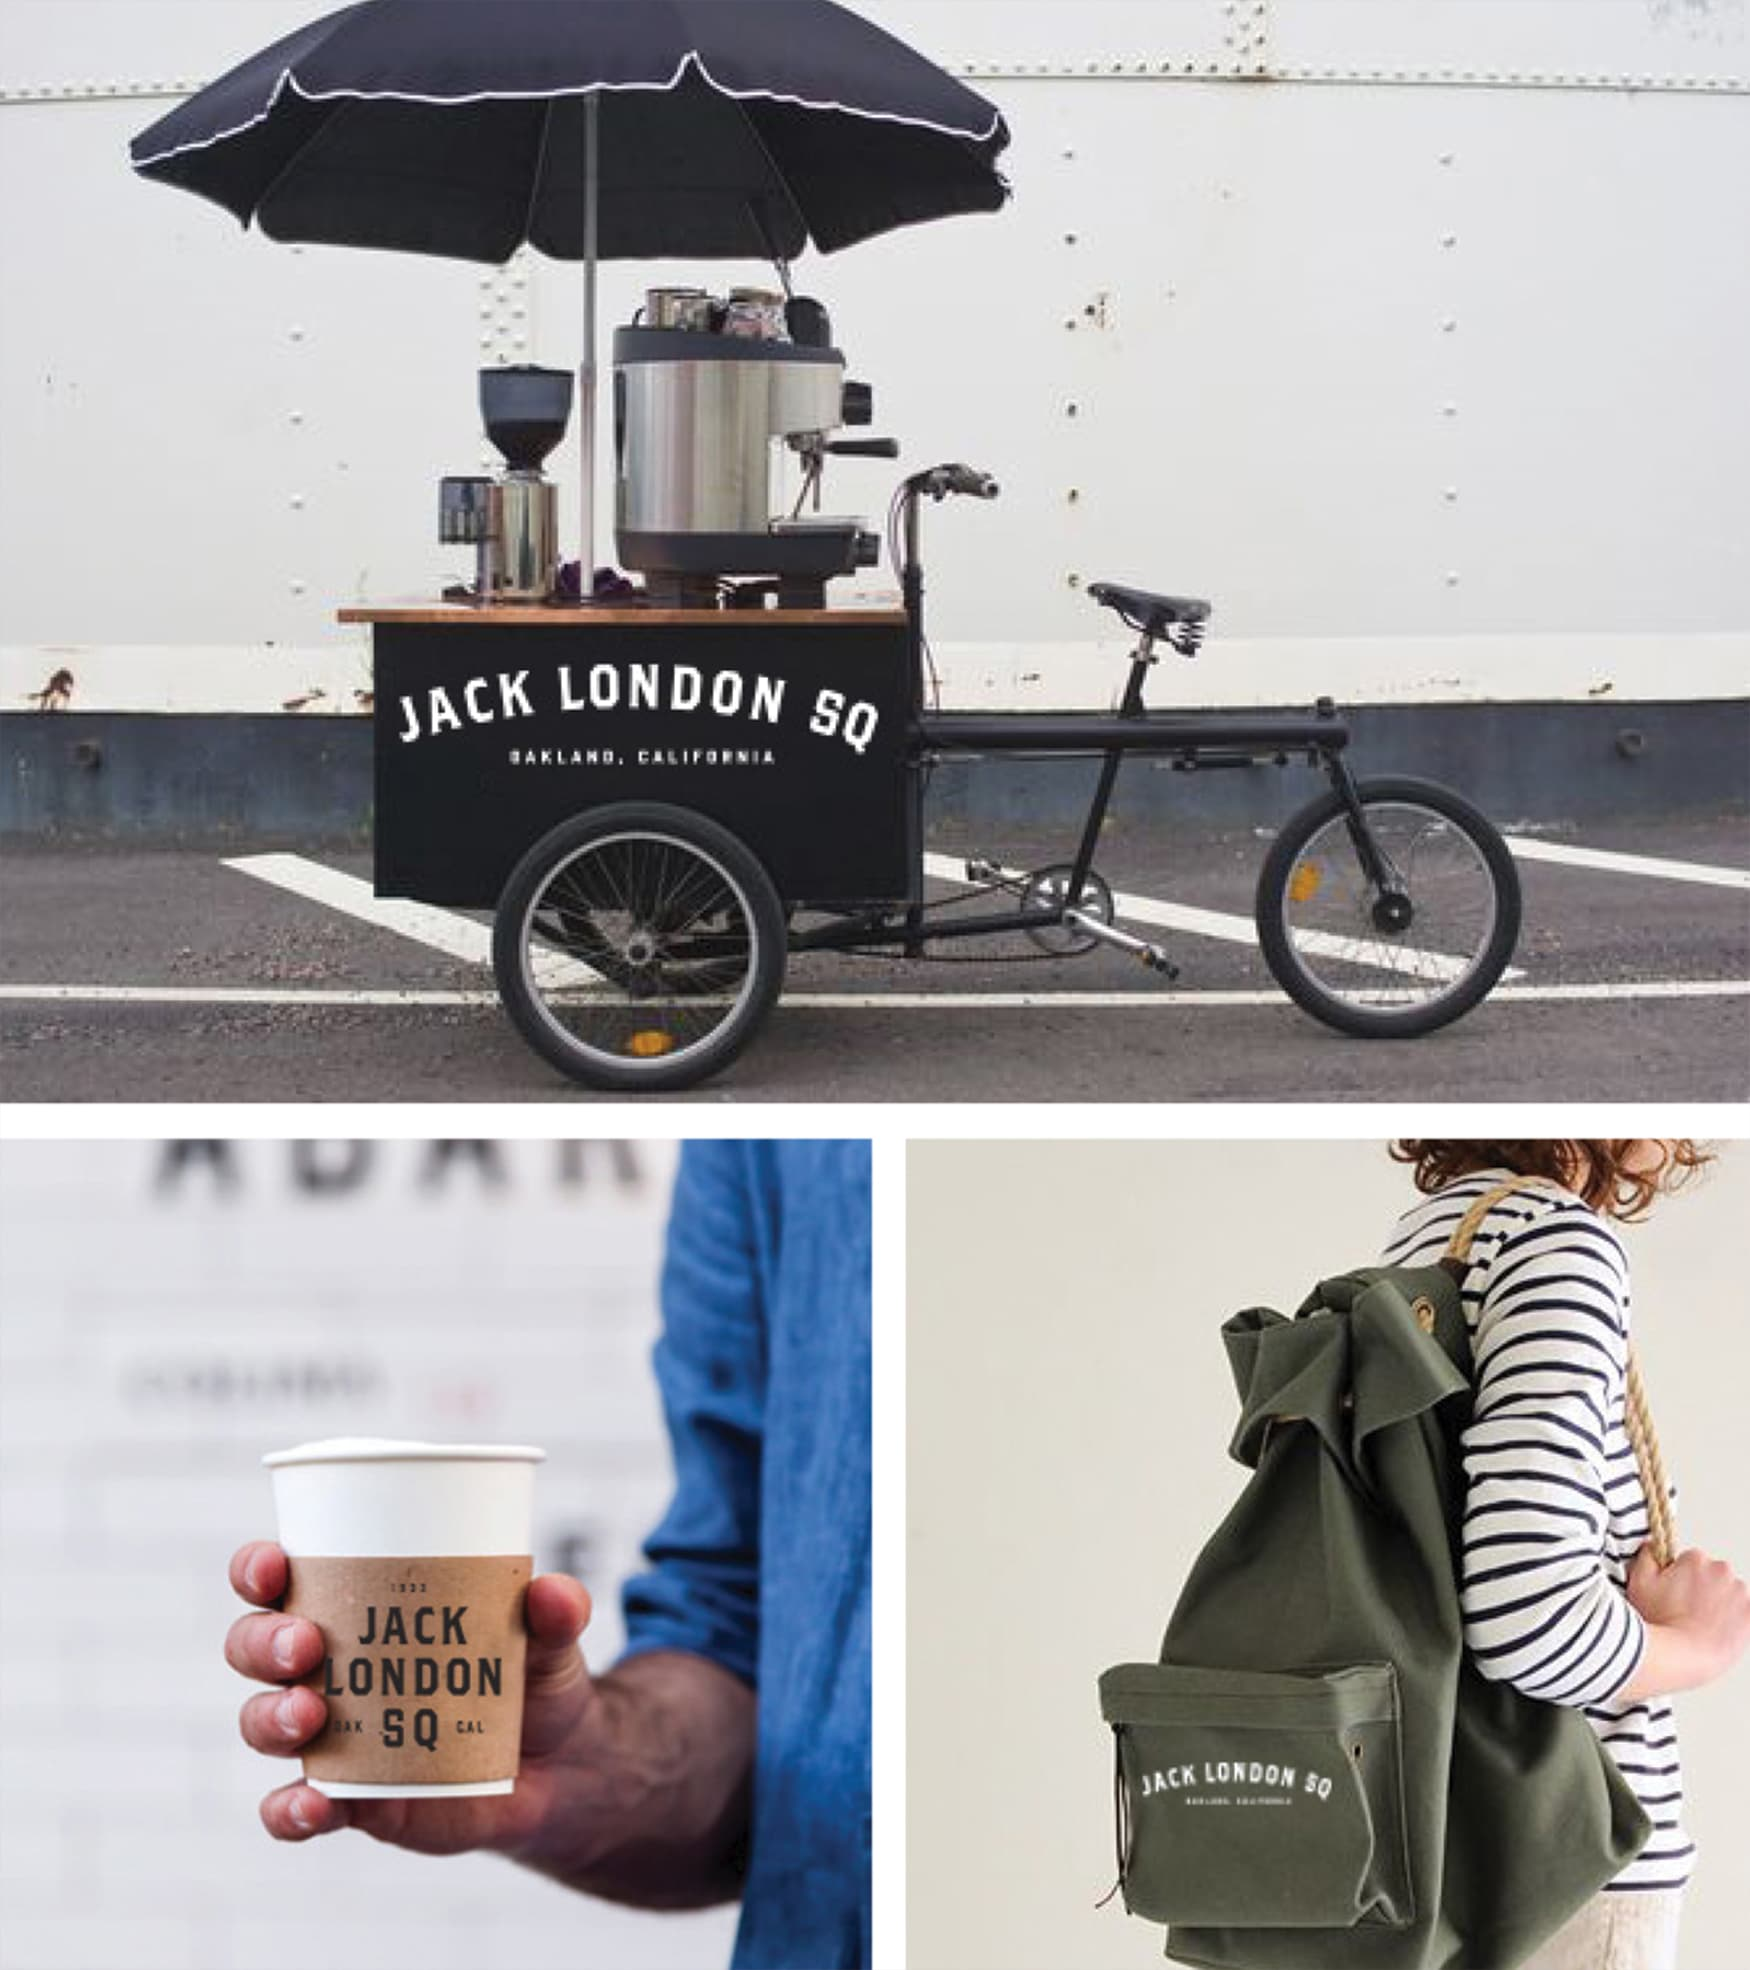 Jack London Square branded coffee cart.